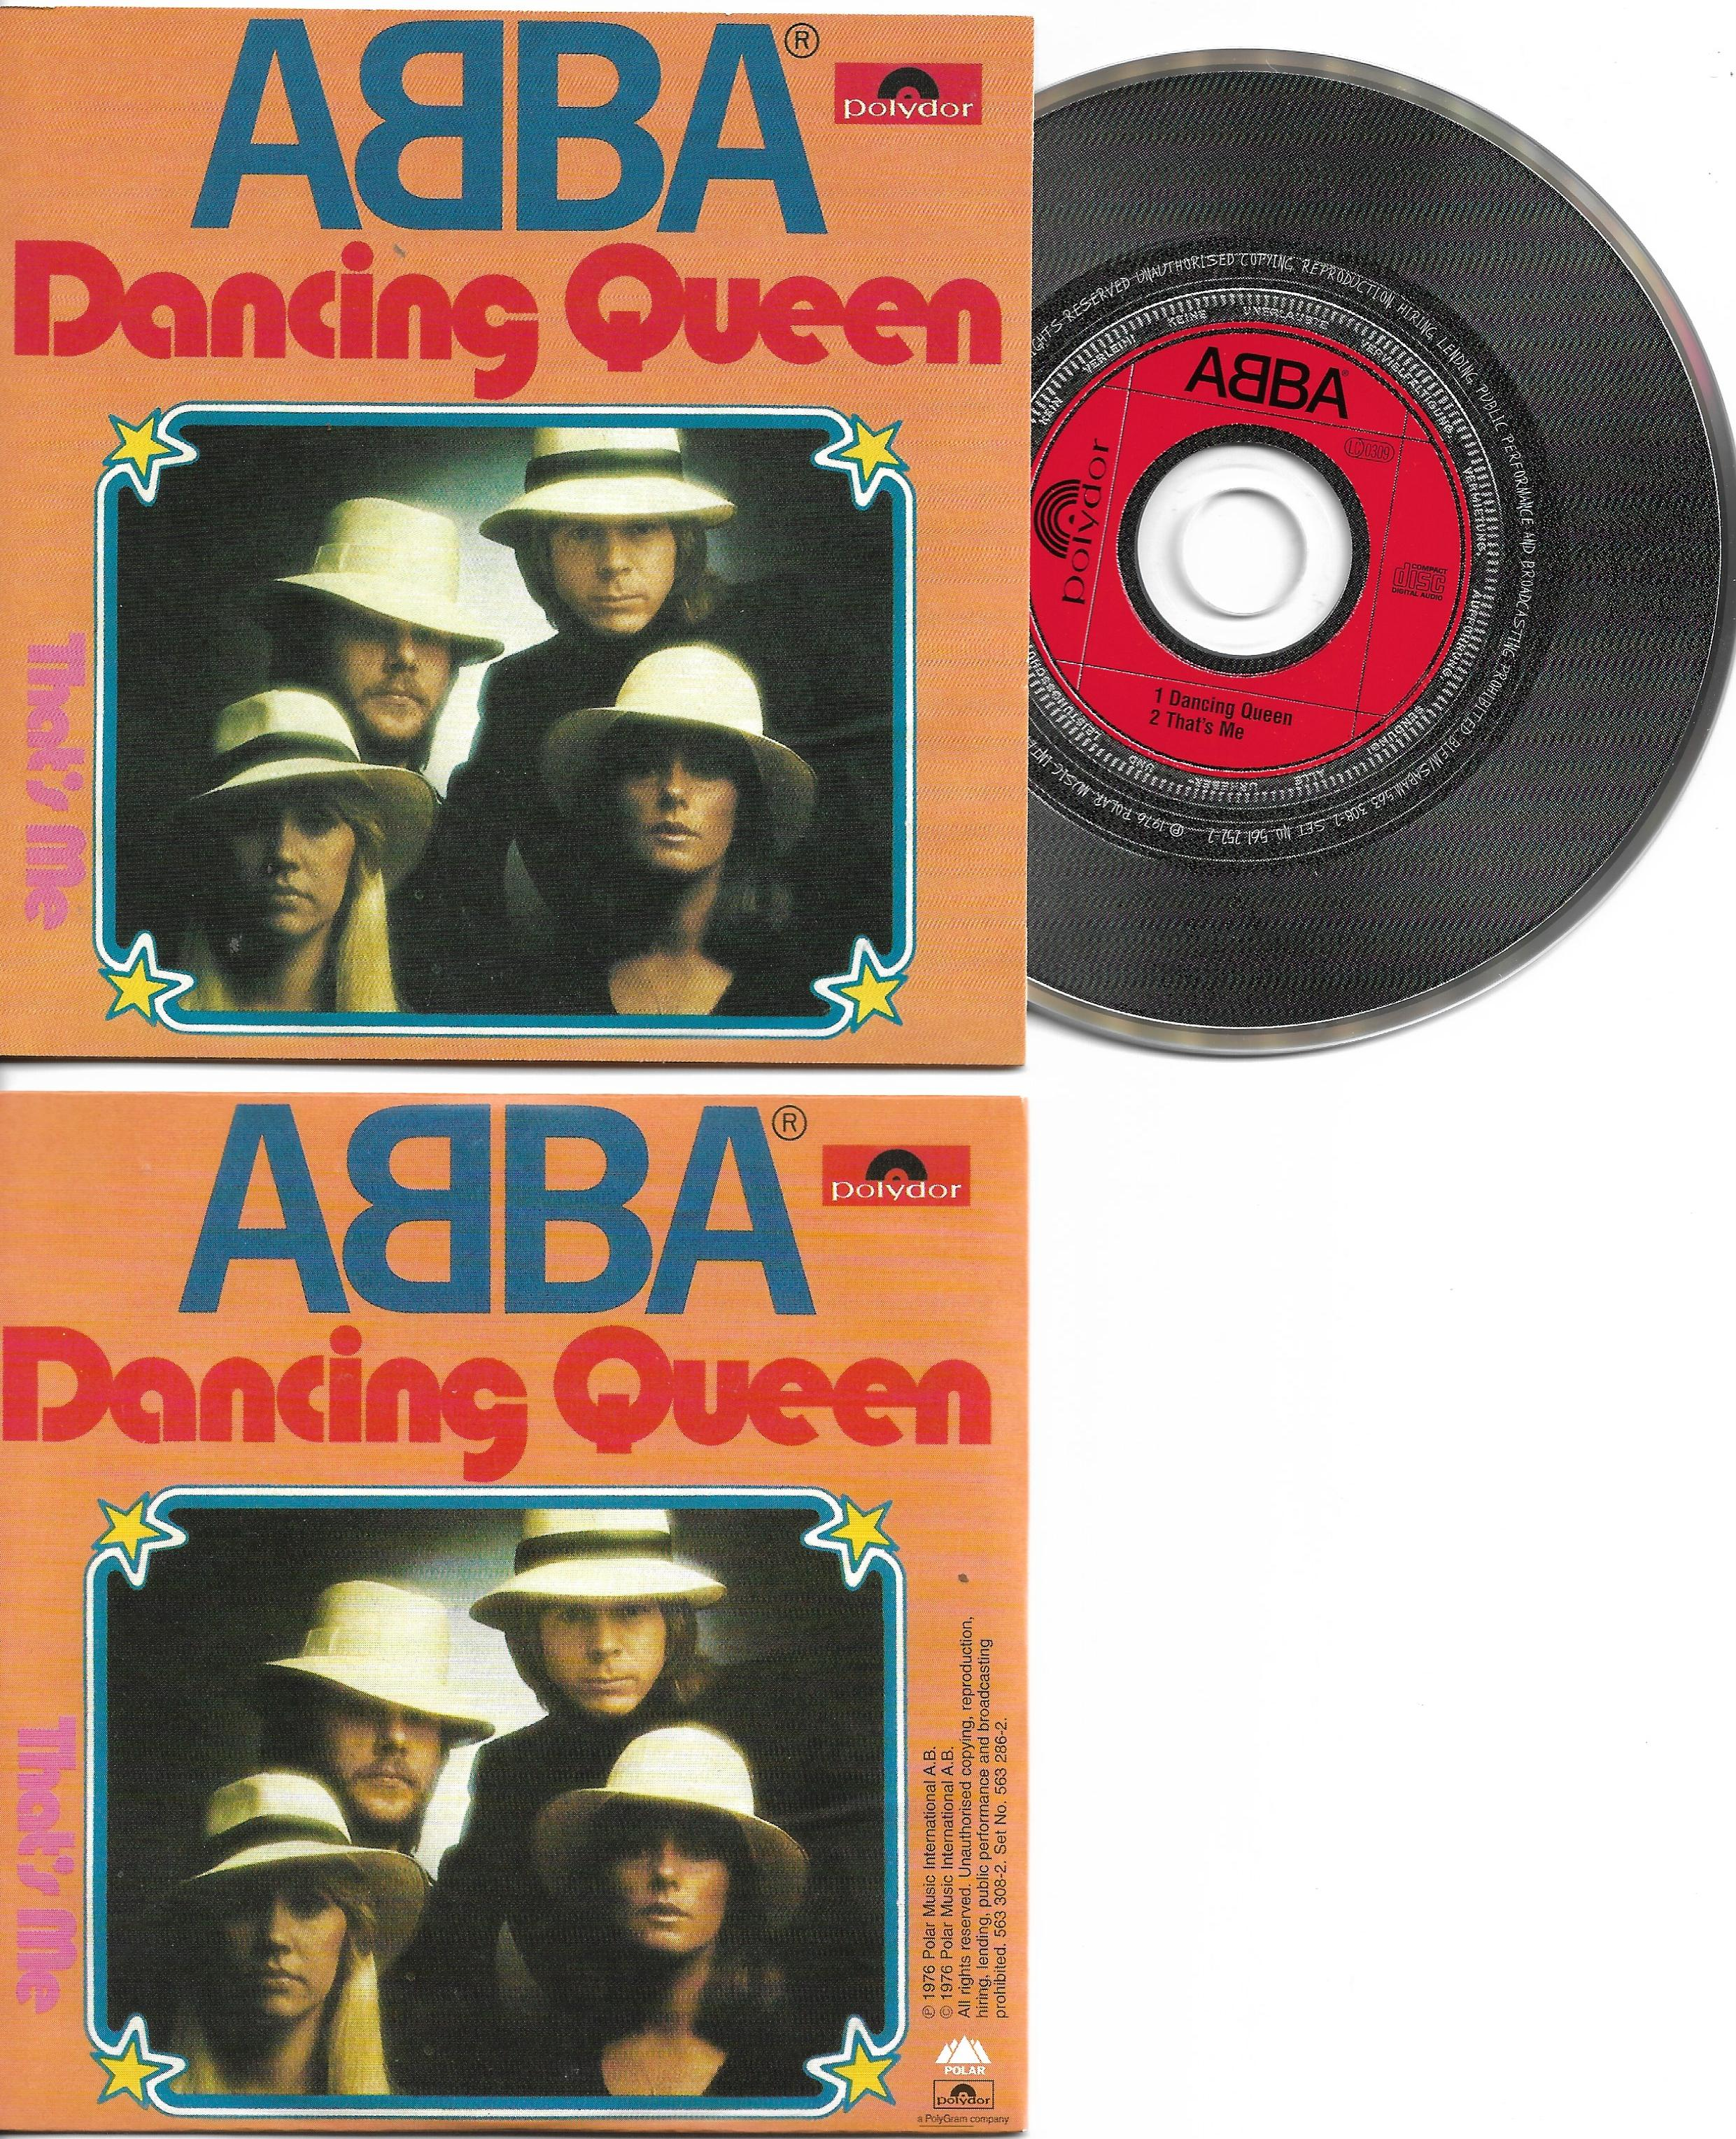 ABBA/A*TEENS - Dancing Queen Lp Vers. 3:48/pierre J�s Main Radio Mix 3:27/pierre J�s Main Extended Mix 5:46